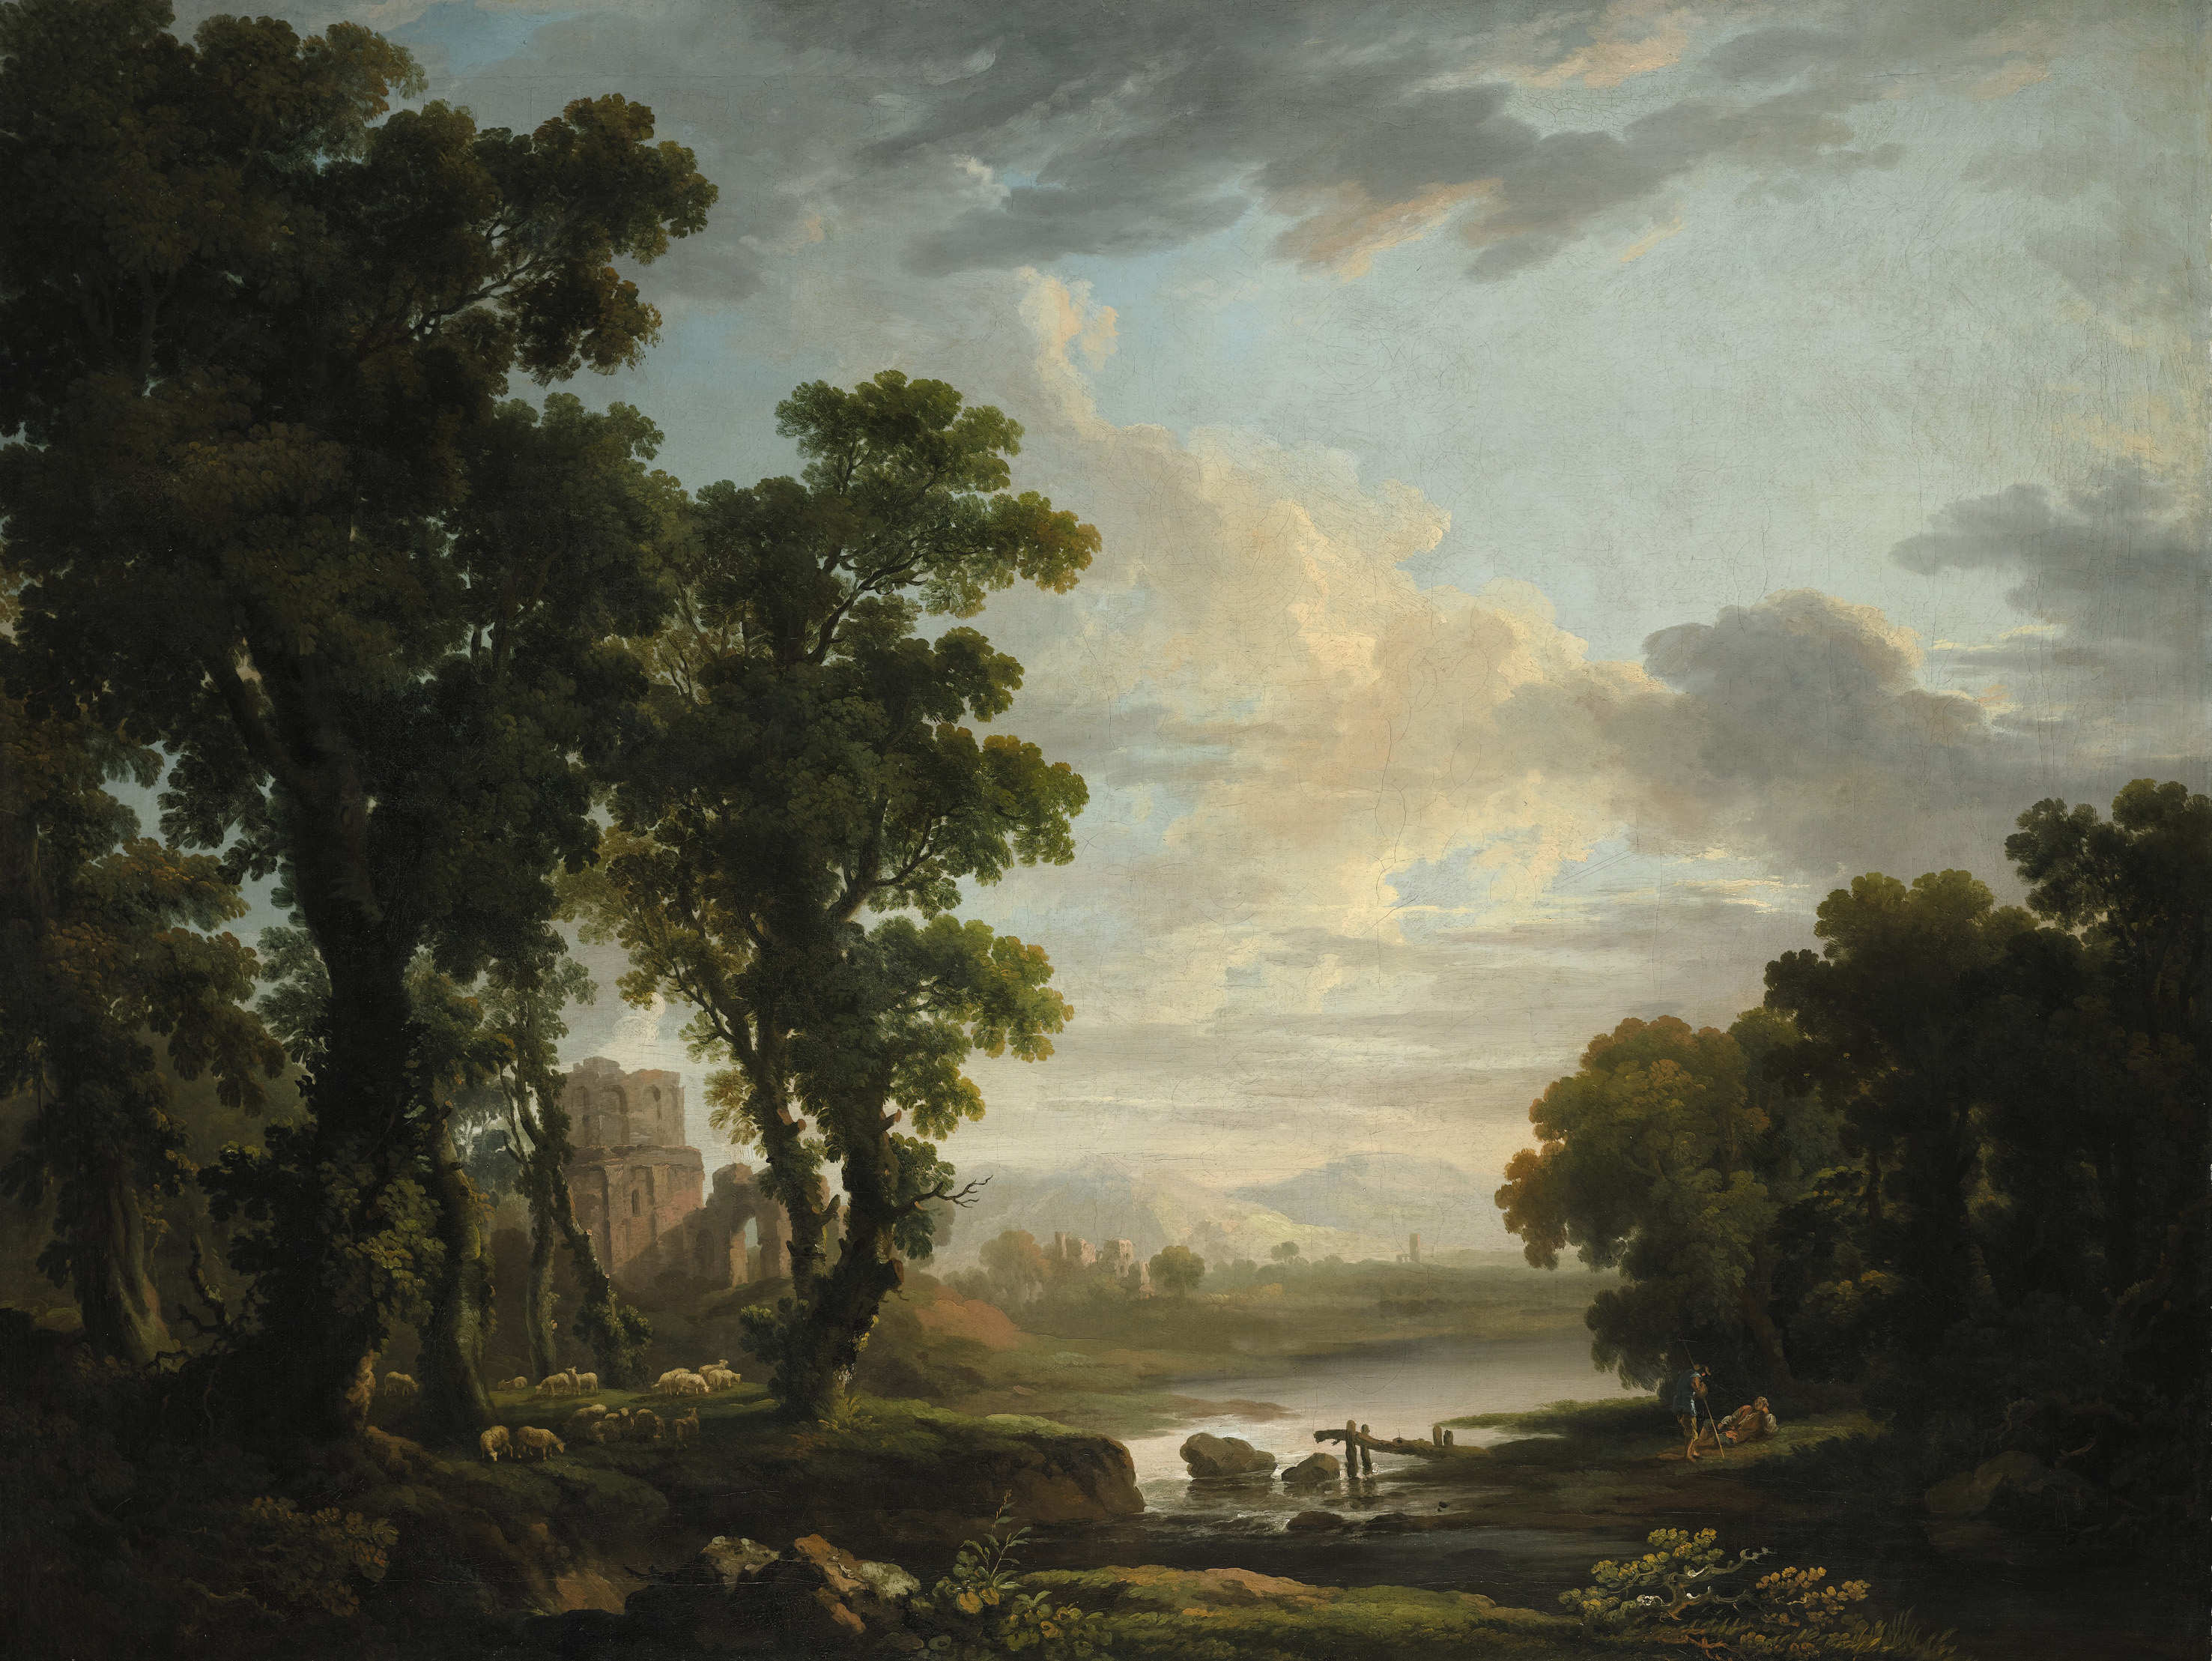 Landscape By George Barret At Sotheby S